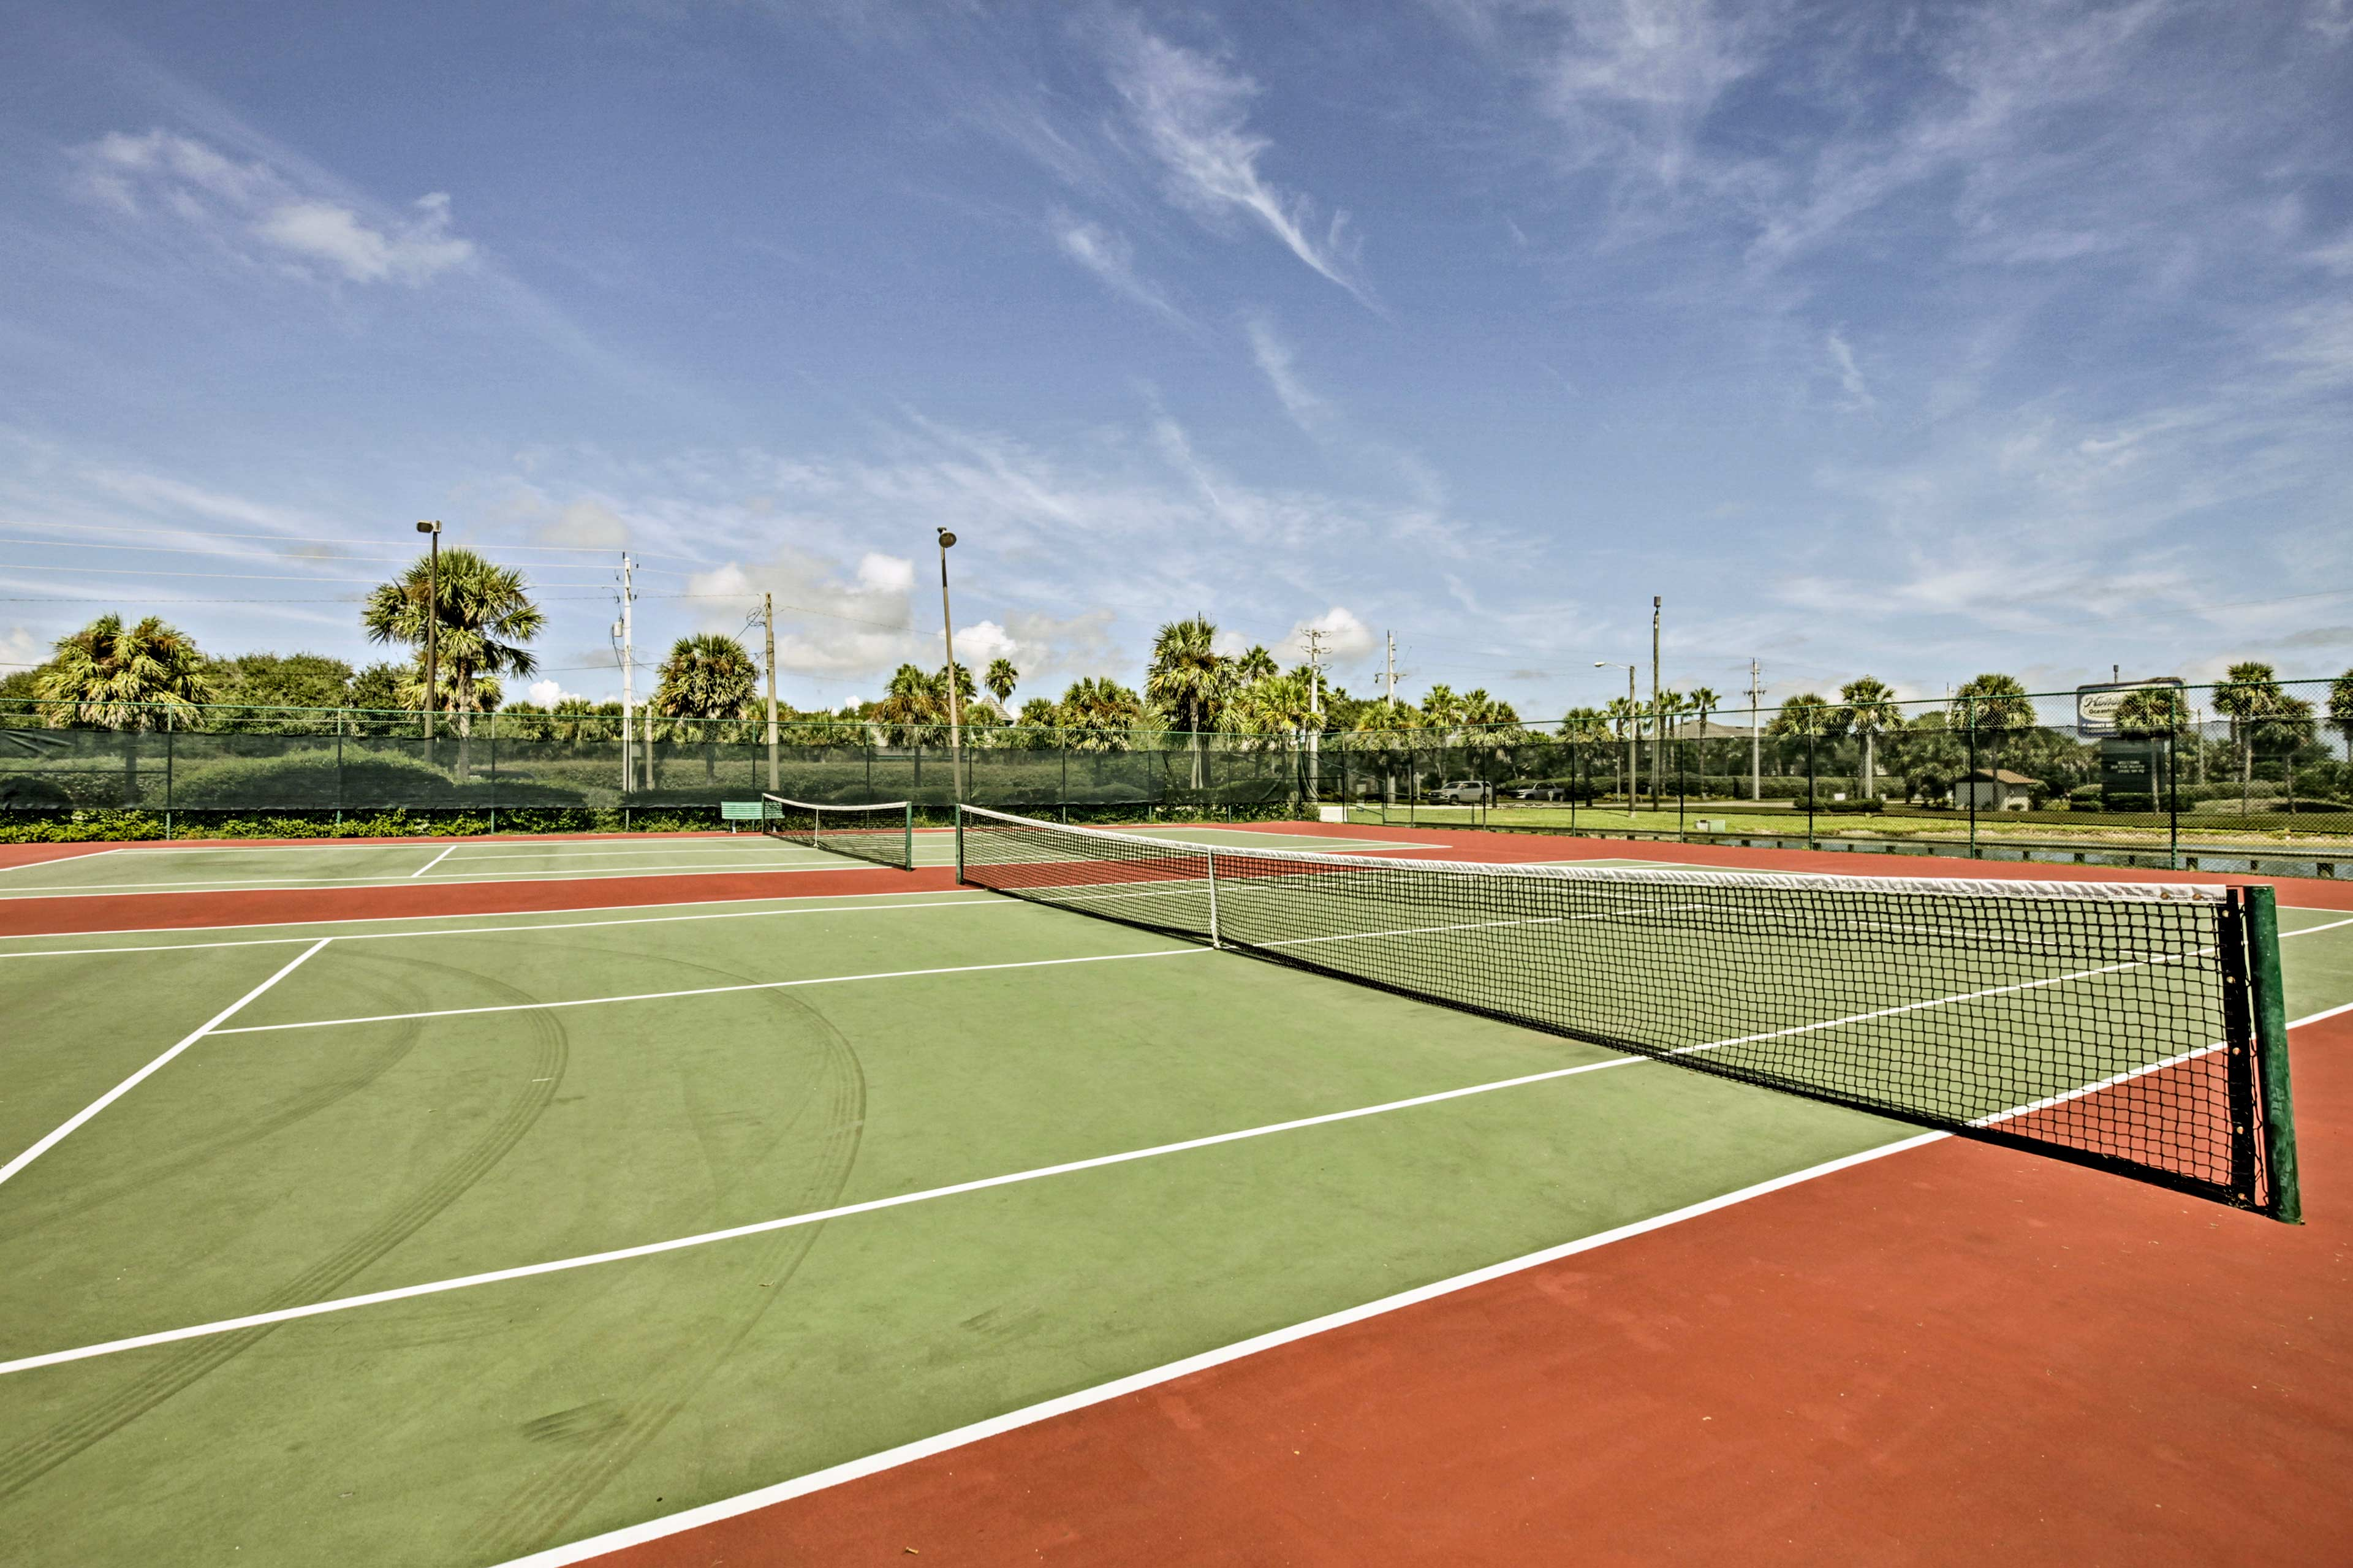 Enjoy free tennis lessons on the community courts.